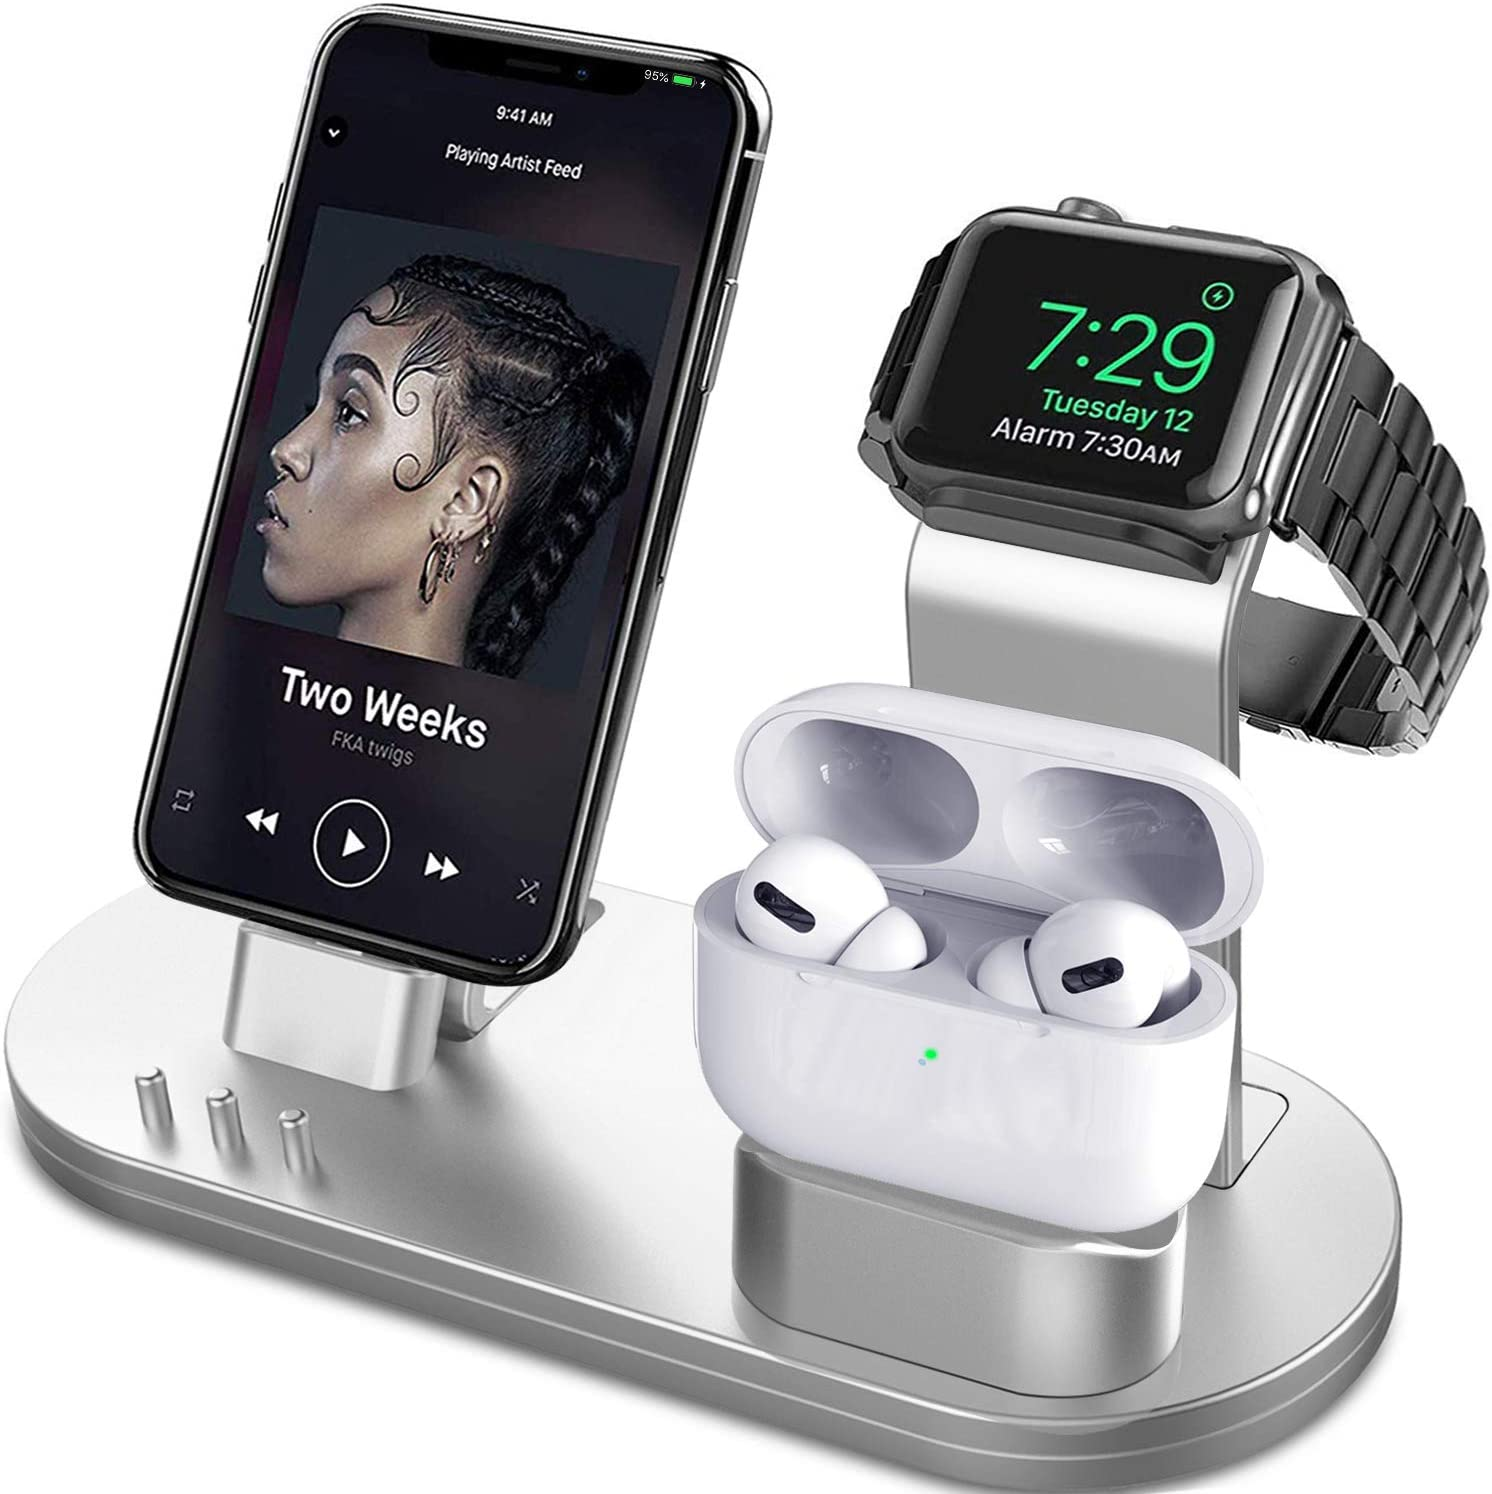 OLEBR 3 in 1 Charging Stand Compatible with iWatch Series 5/4/3/2/1, AirPods and iPhone 11/11 Pro/11 Pro Max/Xs/X Max/XR/X/8/8Plus/7/7 Plus /6S /6S Plus(Original Charger & Cables Required) Silver